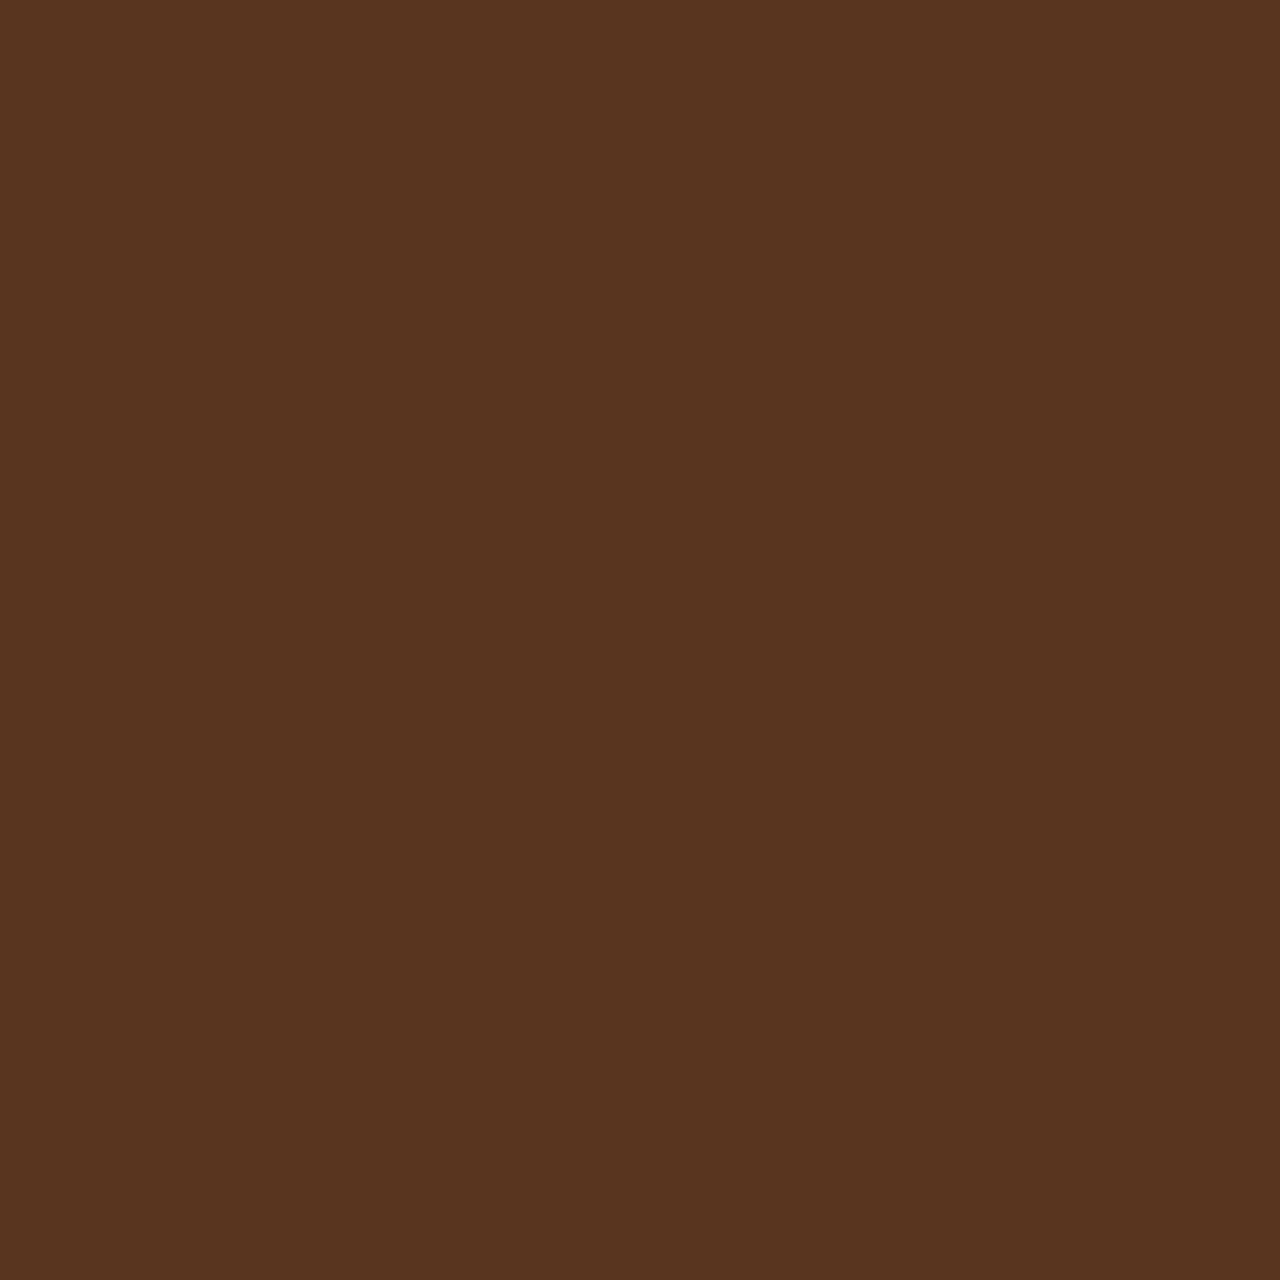 RAL 8007 Fawn Brown 9840-81059R